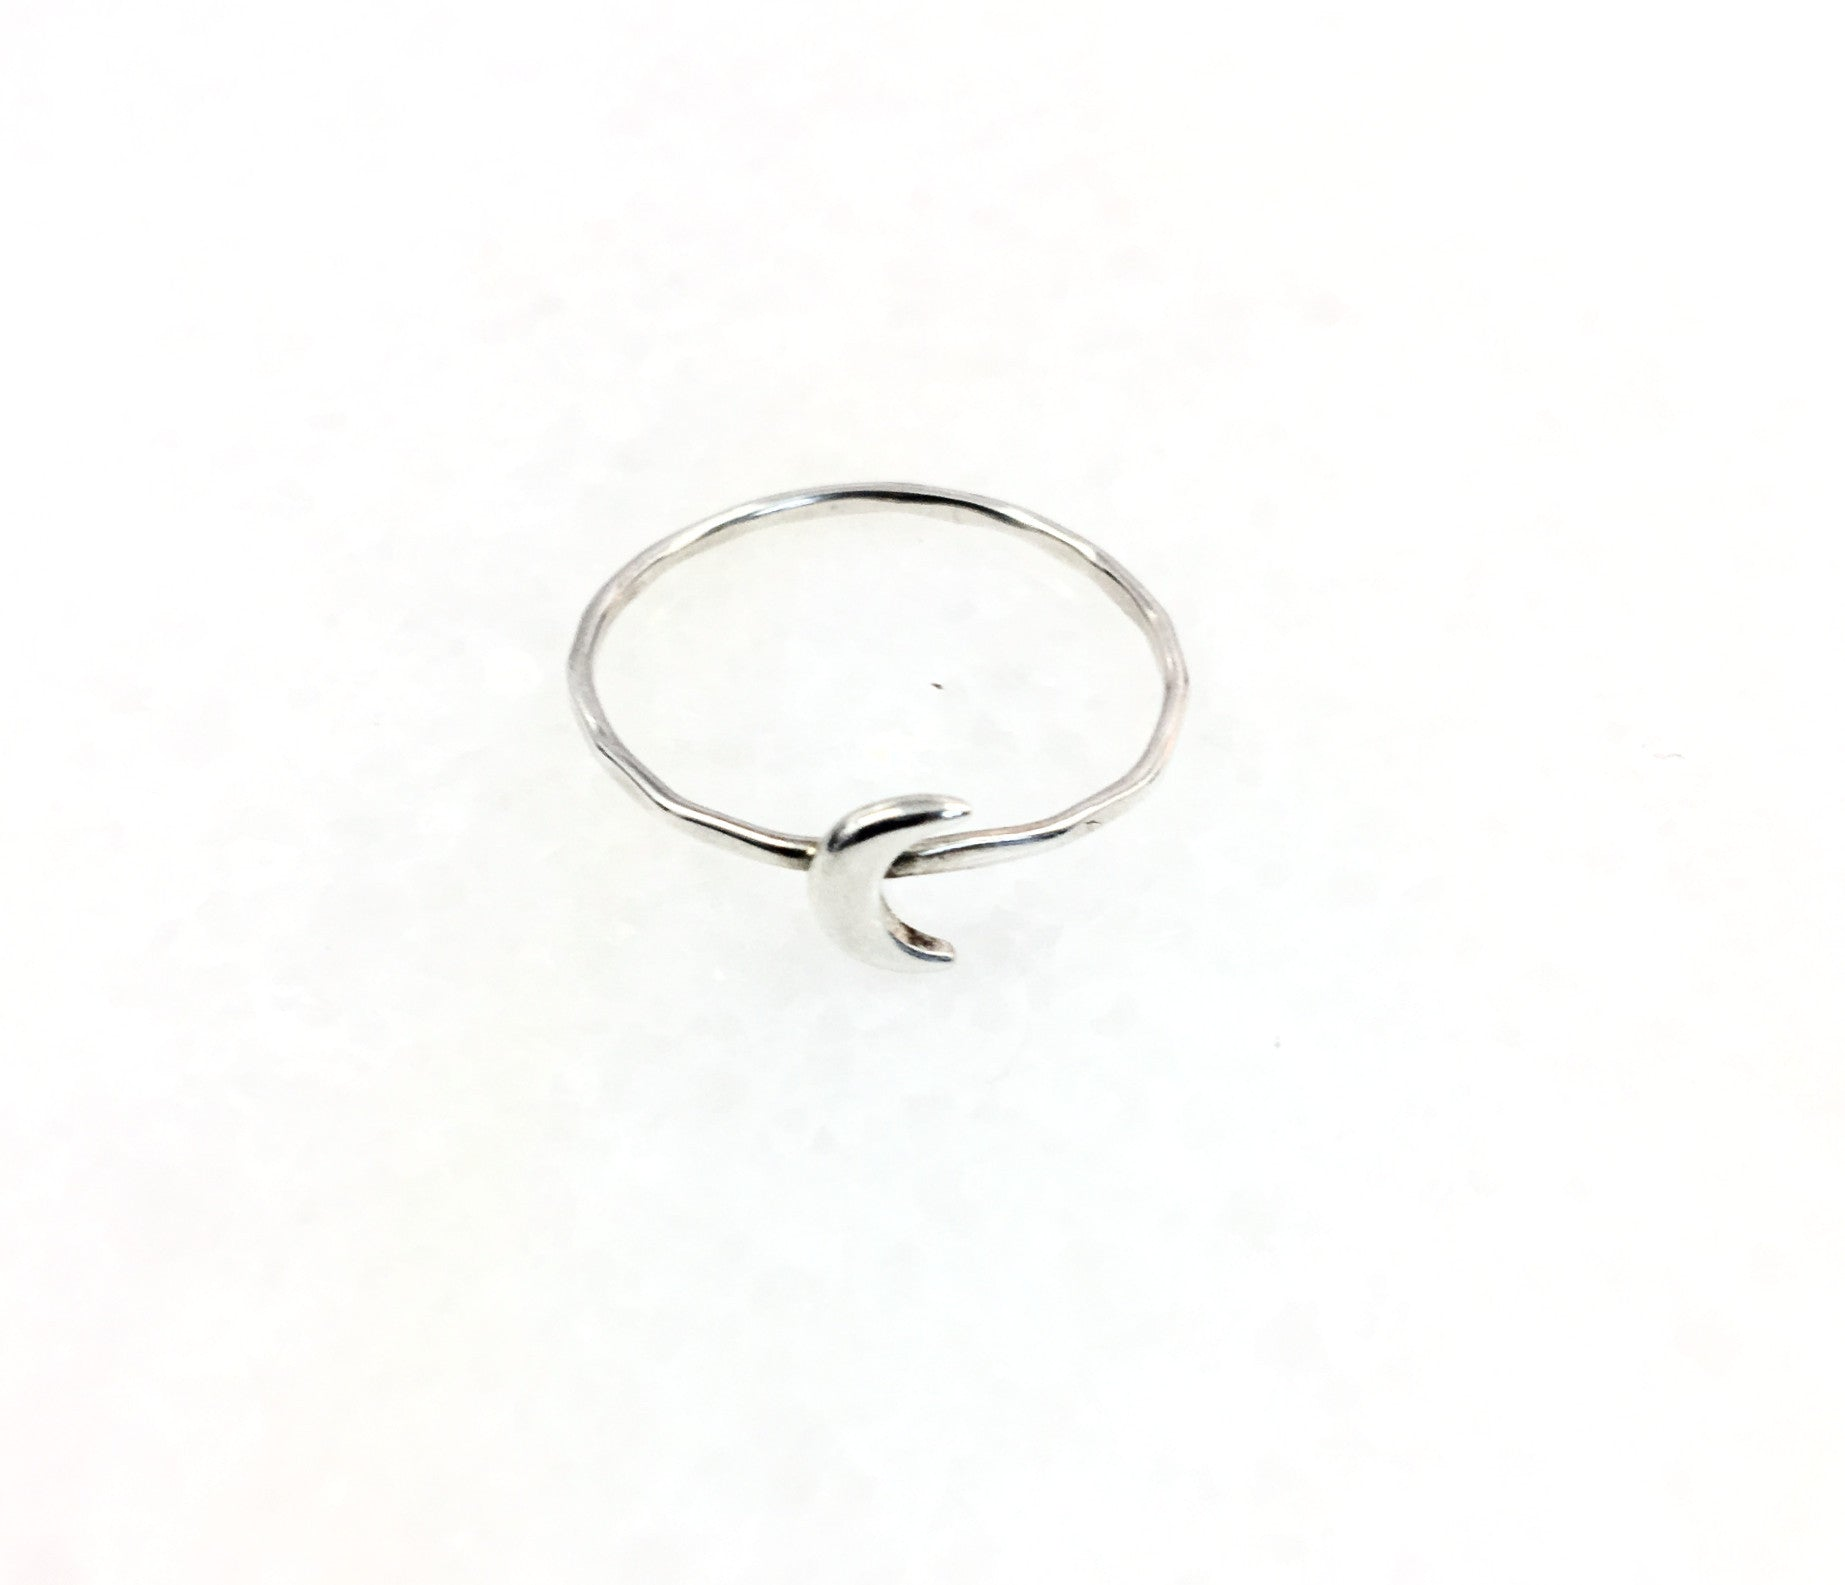 THE PIECE - Crescent ring